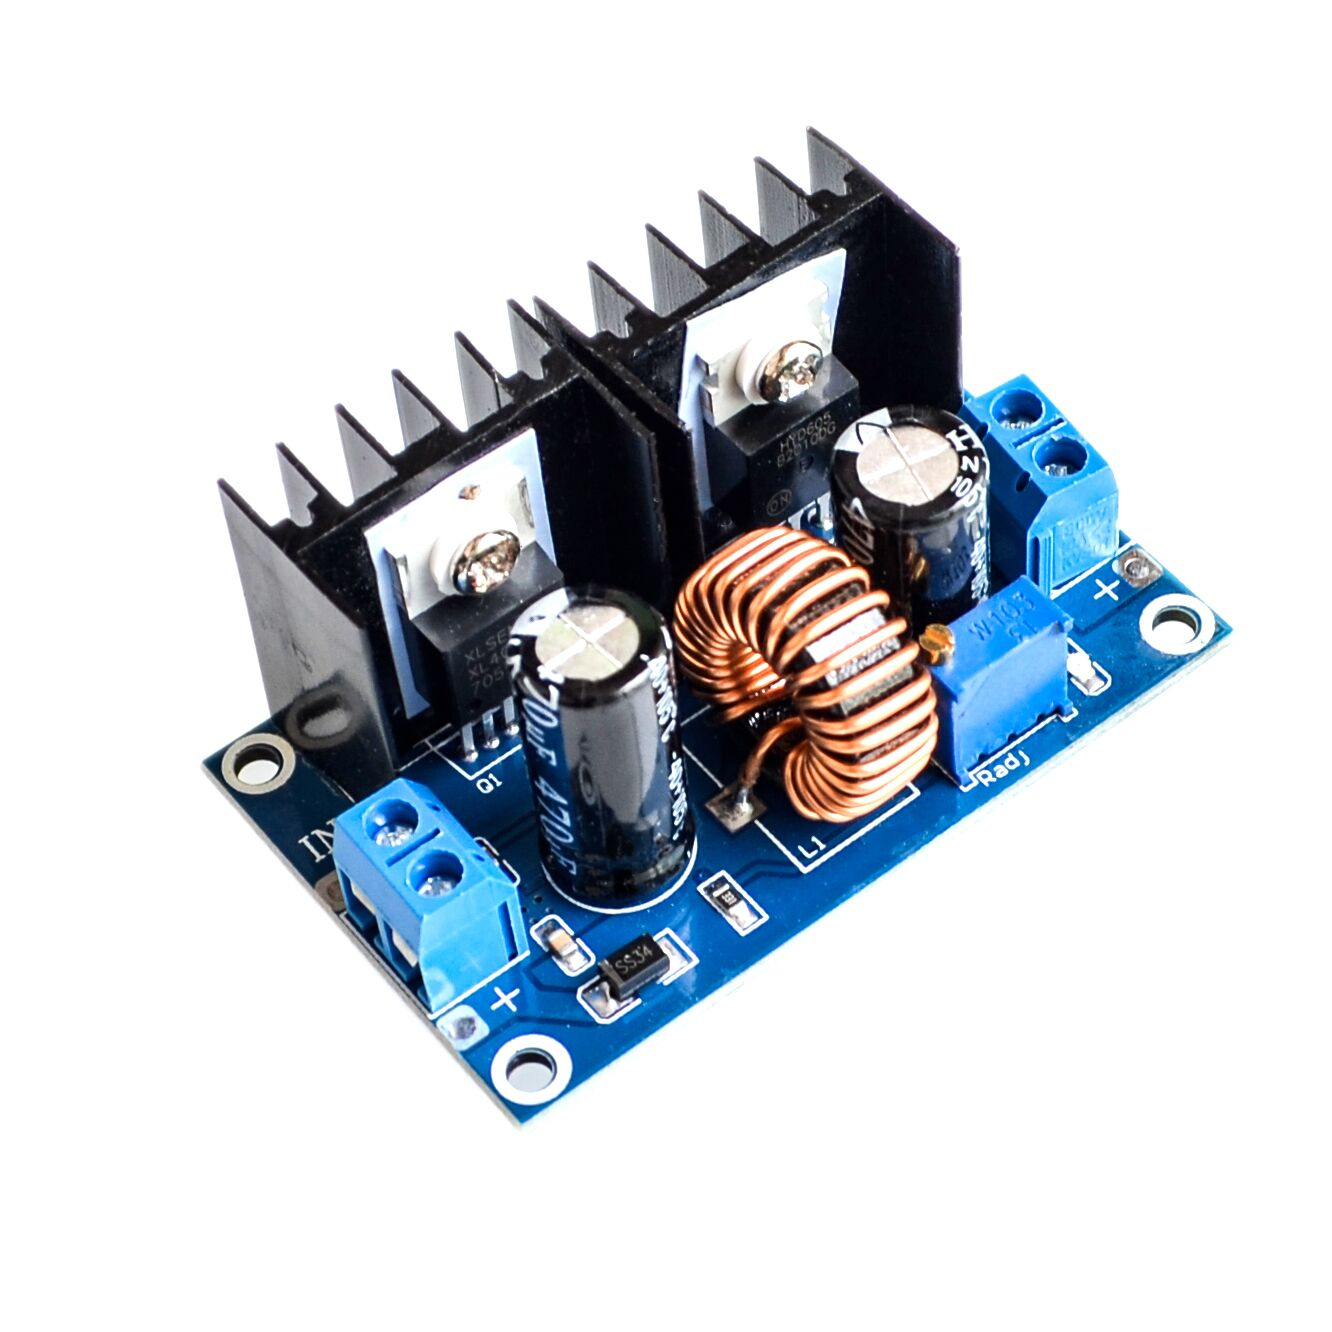 [해외]XL4016 PWM Adjustable 4-36V To 1.25-36V Step-Down Board Module Max 8A 200W DC-DC Step Down Buck Converter Power Supply/XL4016 PWM Adjustable 4-36V